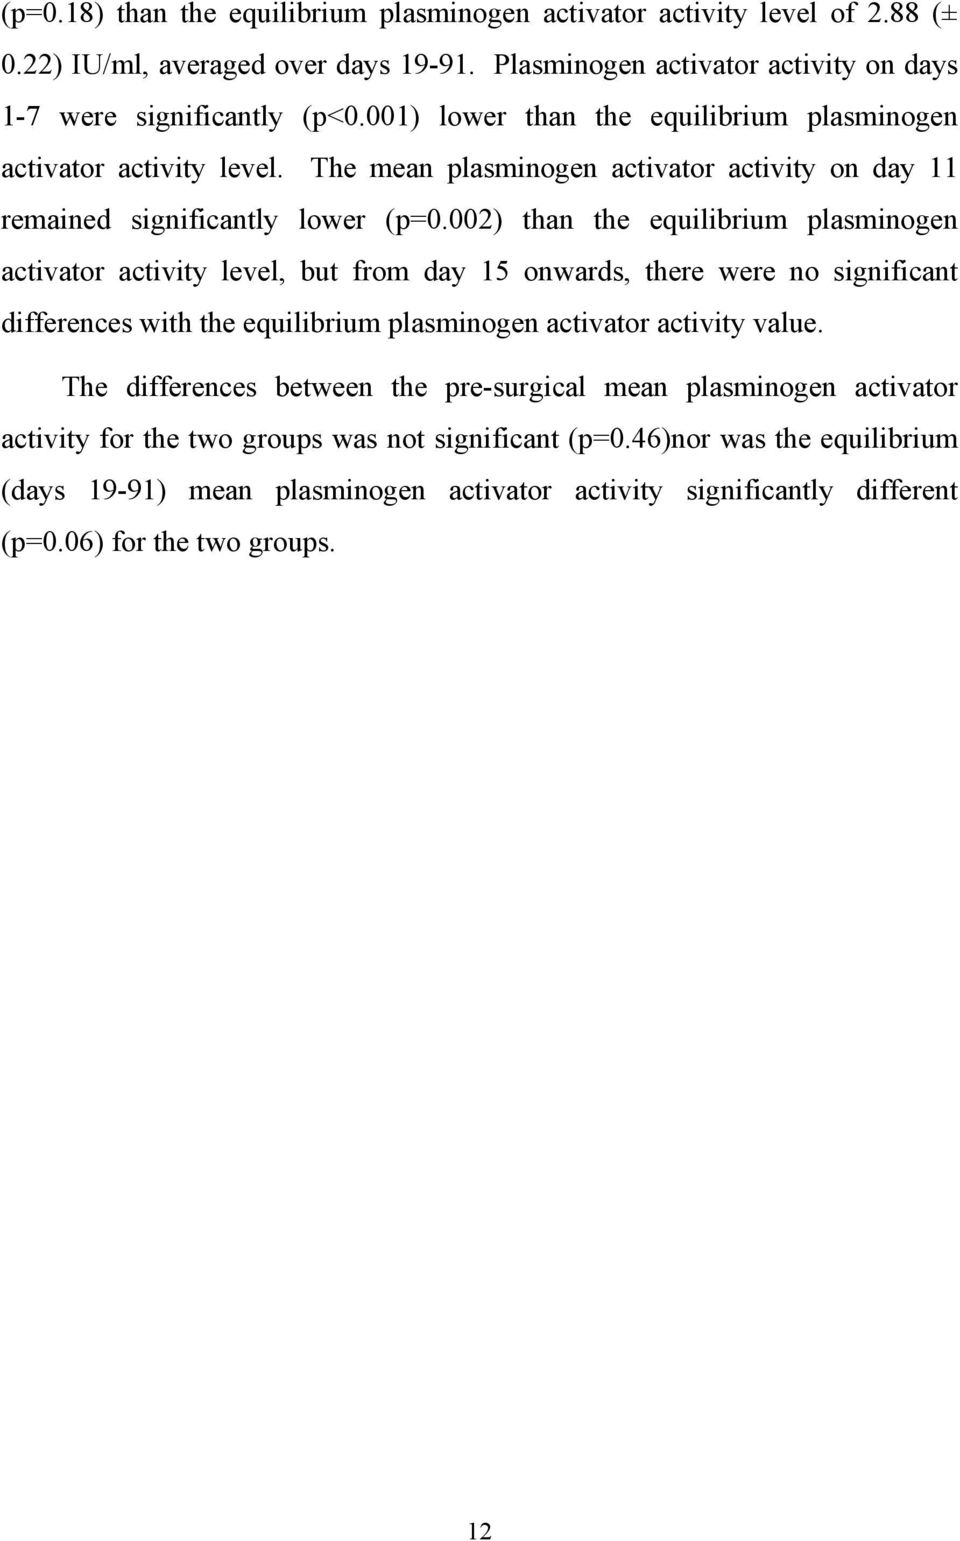 002) than the equilibrium plasminogen activator activity level, but from day 15 onwards, there were no significant differences with the equilibrium plasminogen activator activity value.